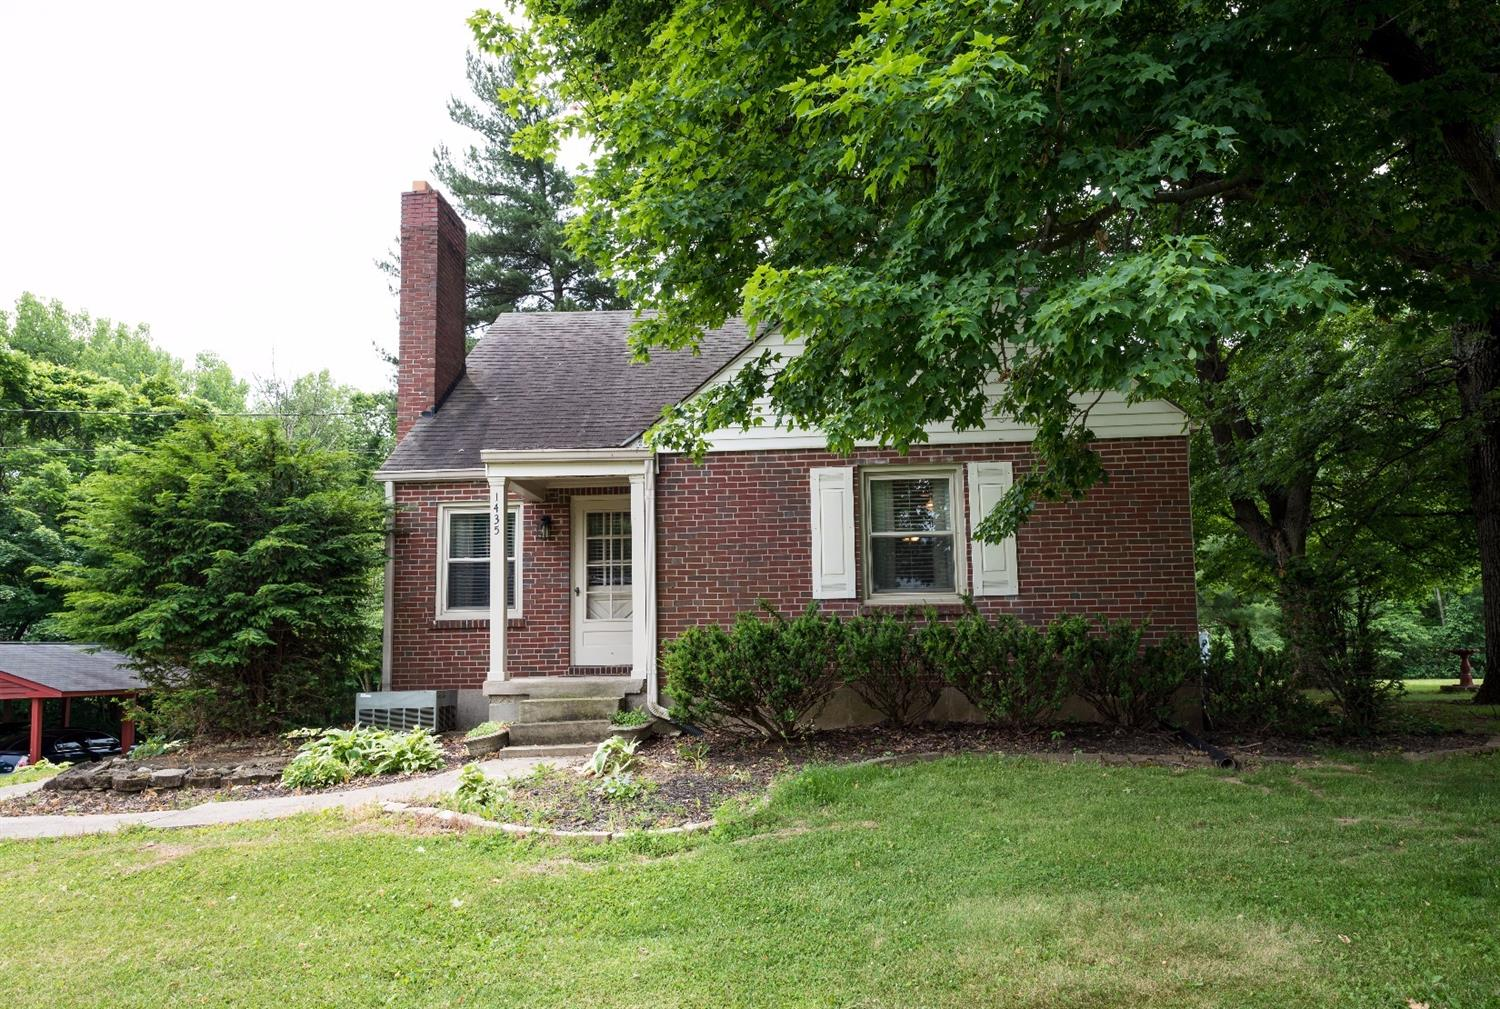 1435 St Rt 131, Miami Twp, OH 45150